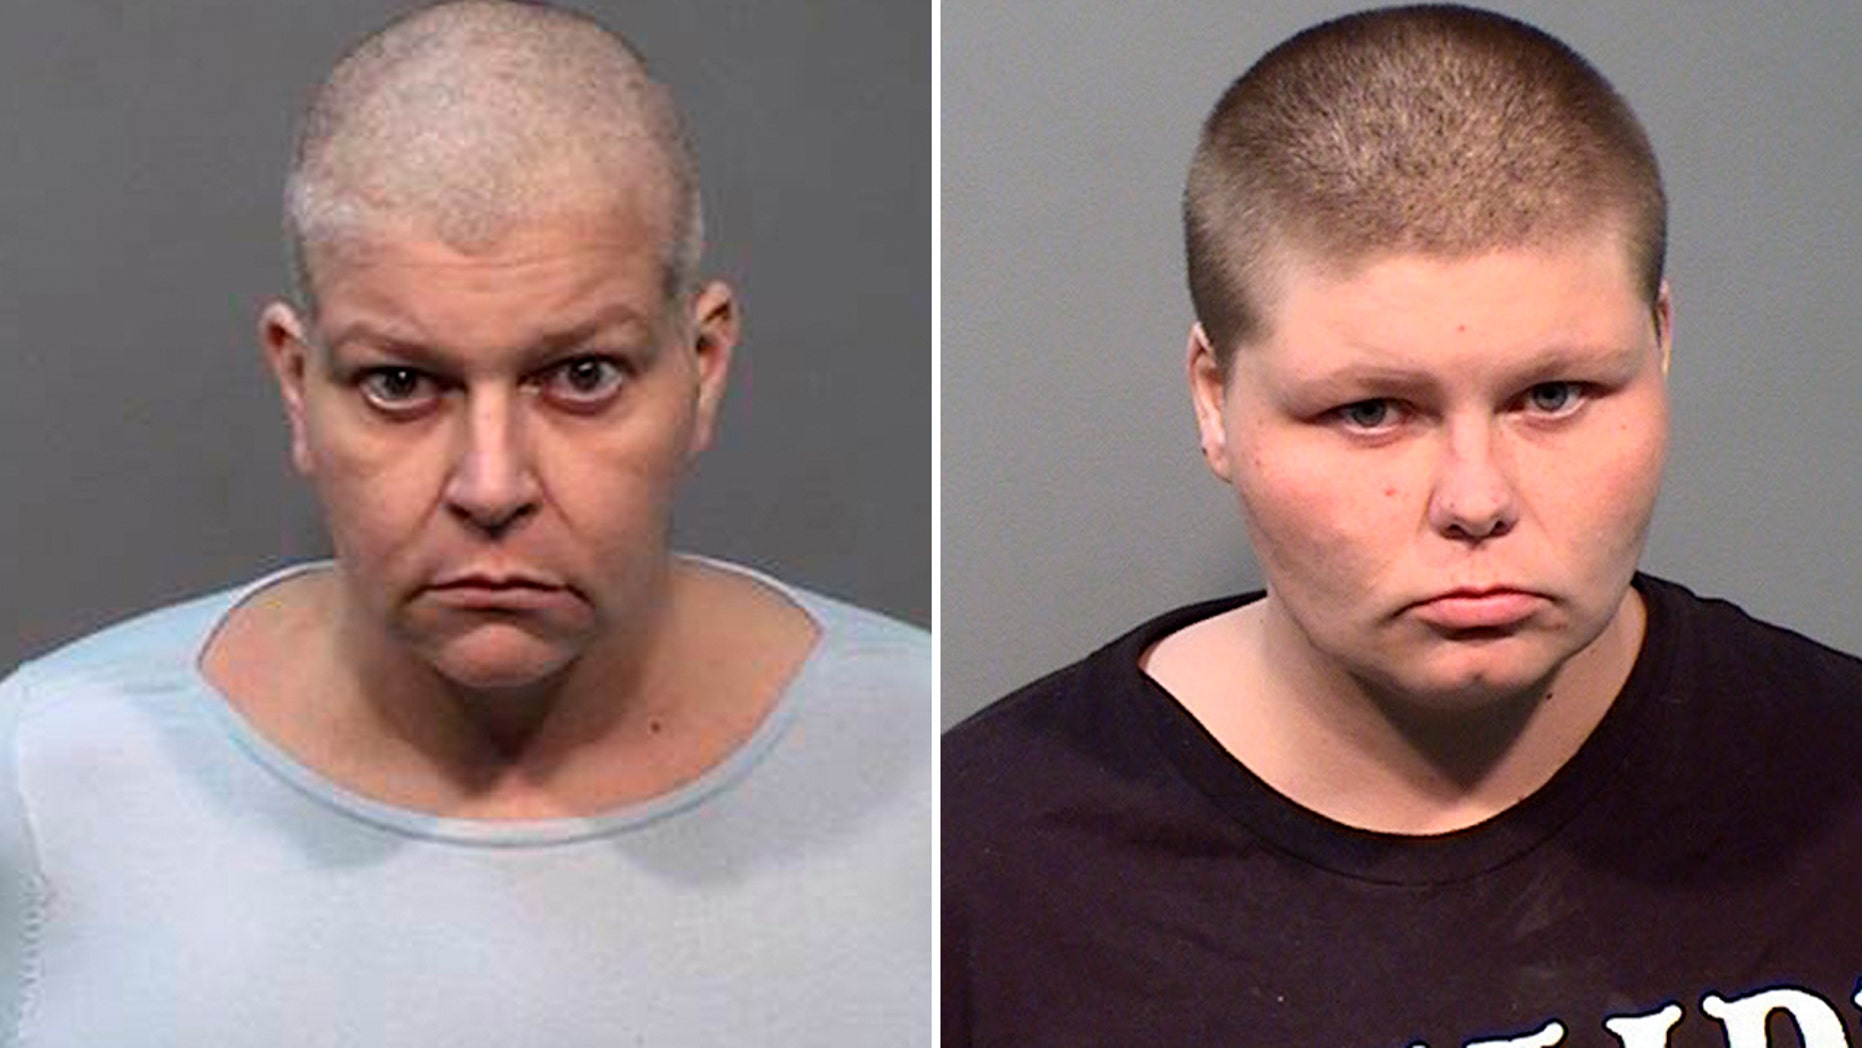 Tara Aven, 46, left, and Briar Aven, 24, right, were arrested Tuesday for allegedly killing the family's grandmother and cashing her monthly checks, police said.